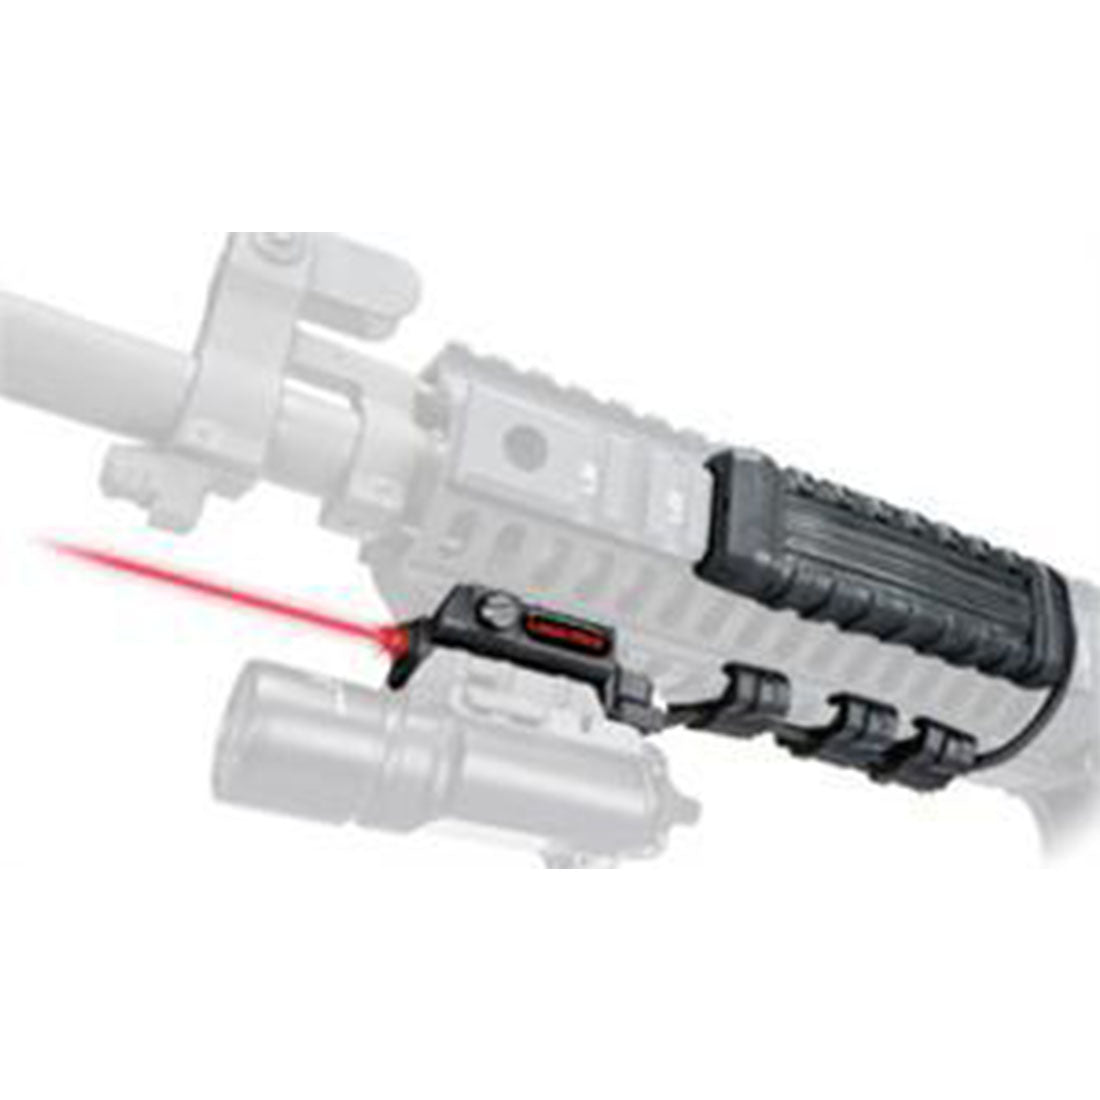 USNV Visible Red Laser Rifle Kit | Uni-Max ES Red Visible Laser Kit